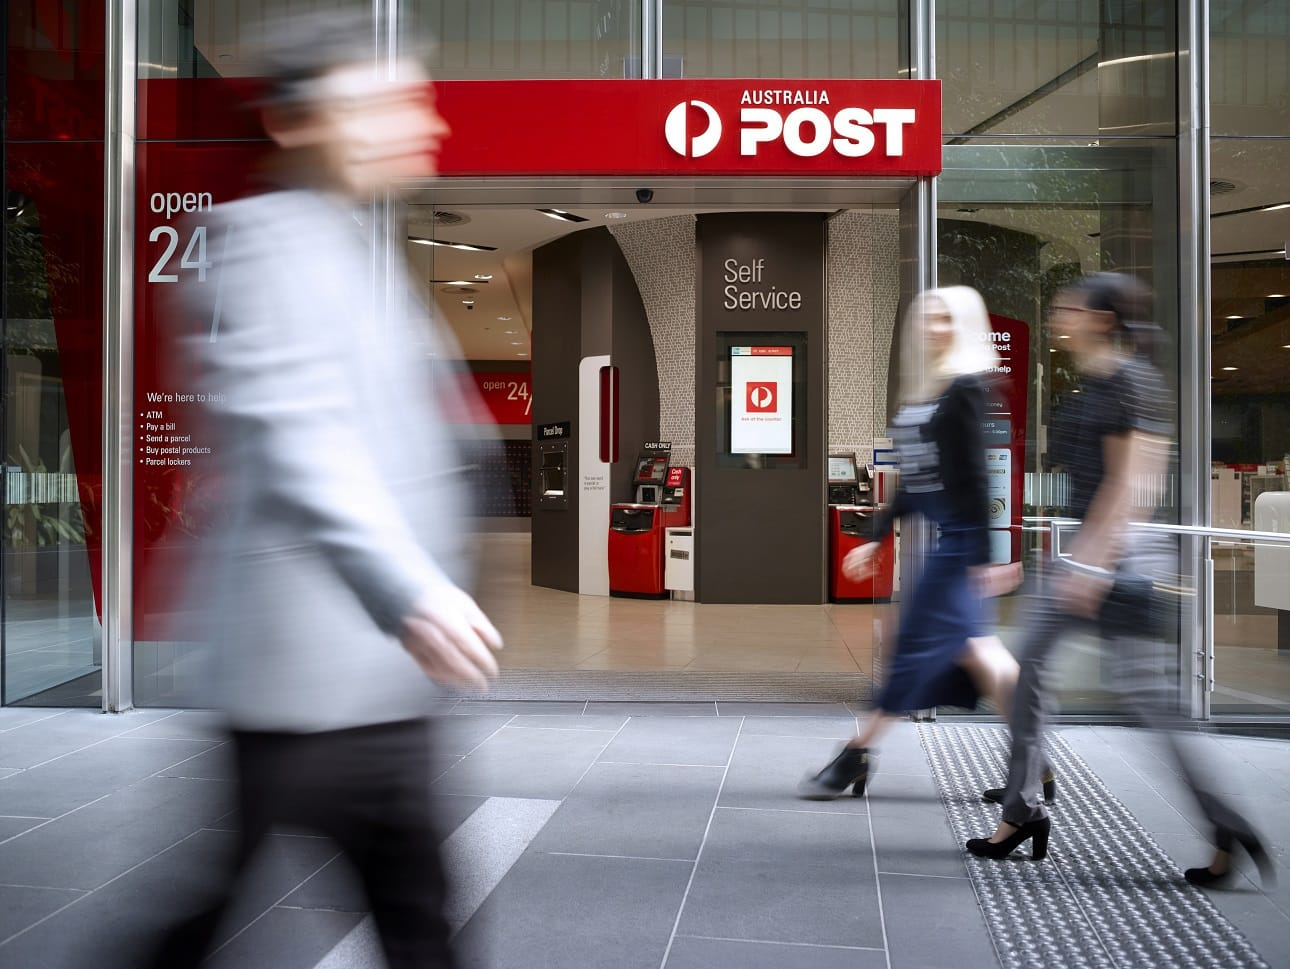 COVID-19 Notification 30-March-2020 Australia Post helping to keep Australia connected